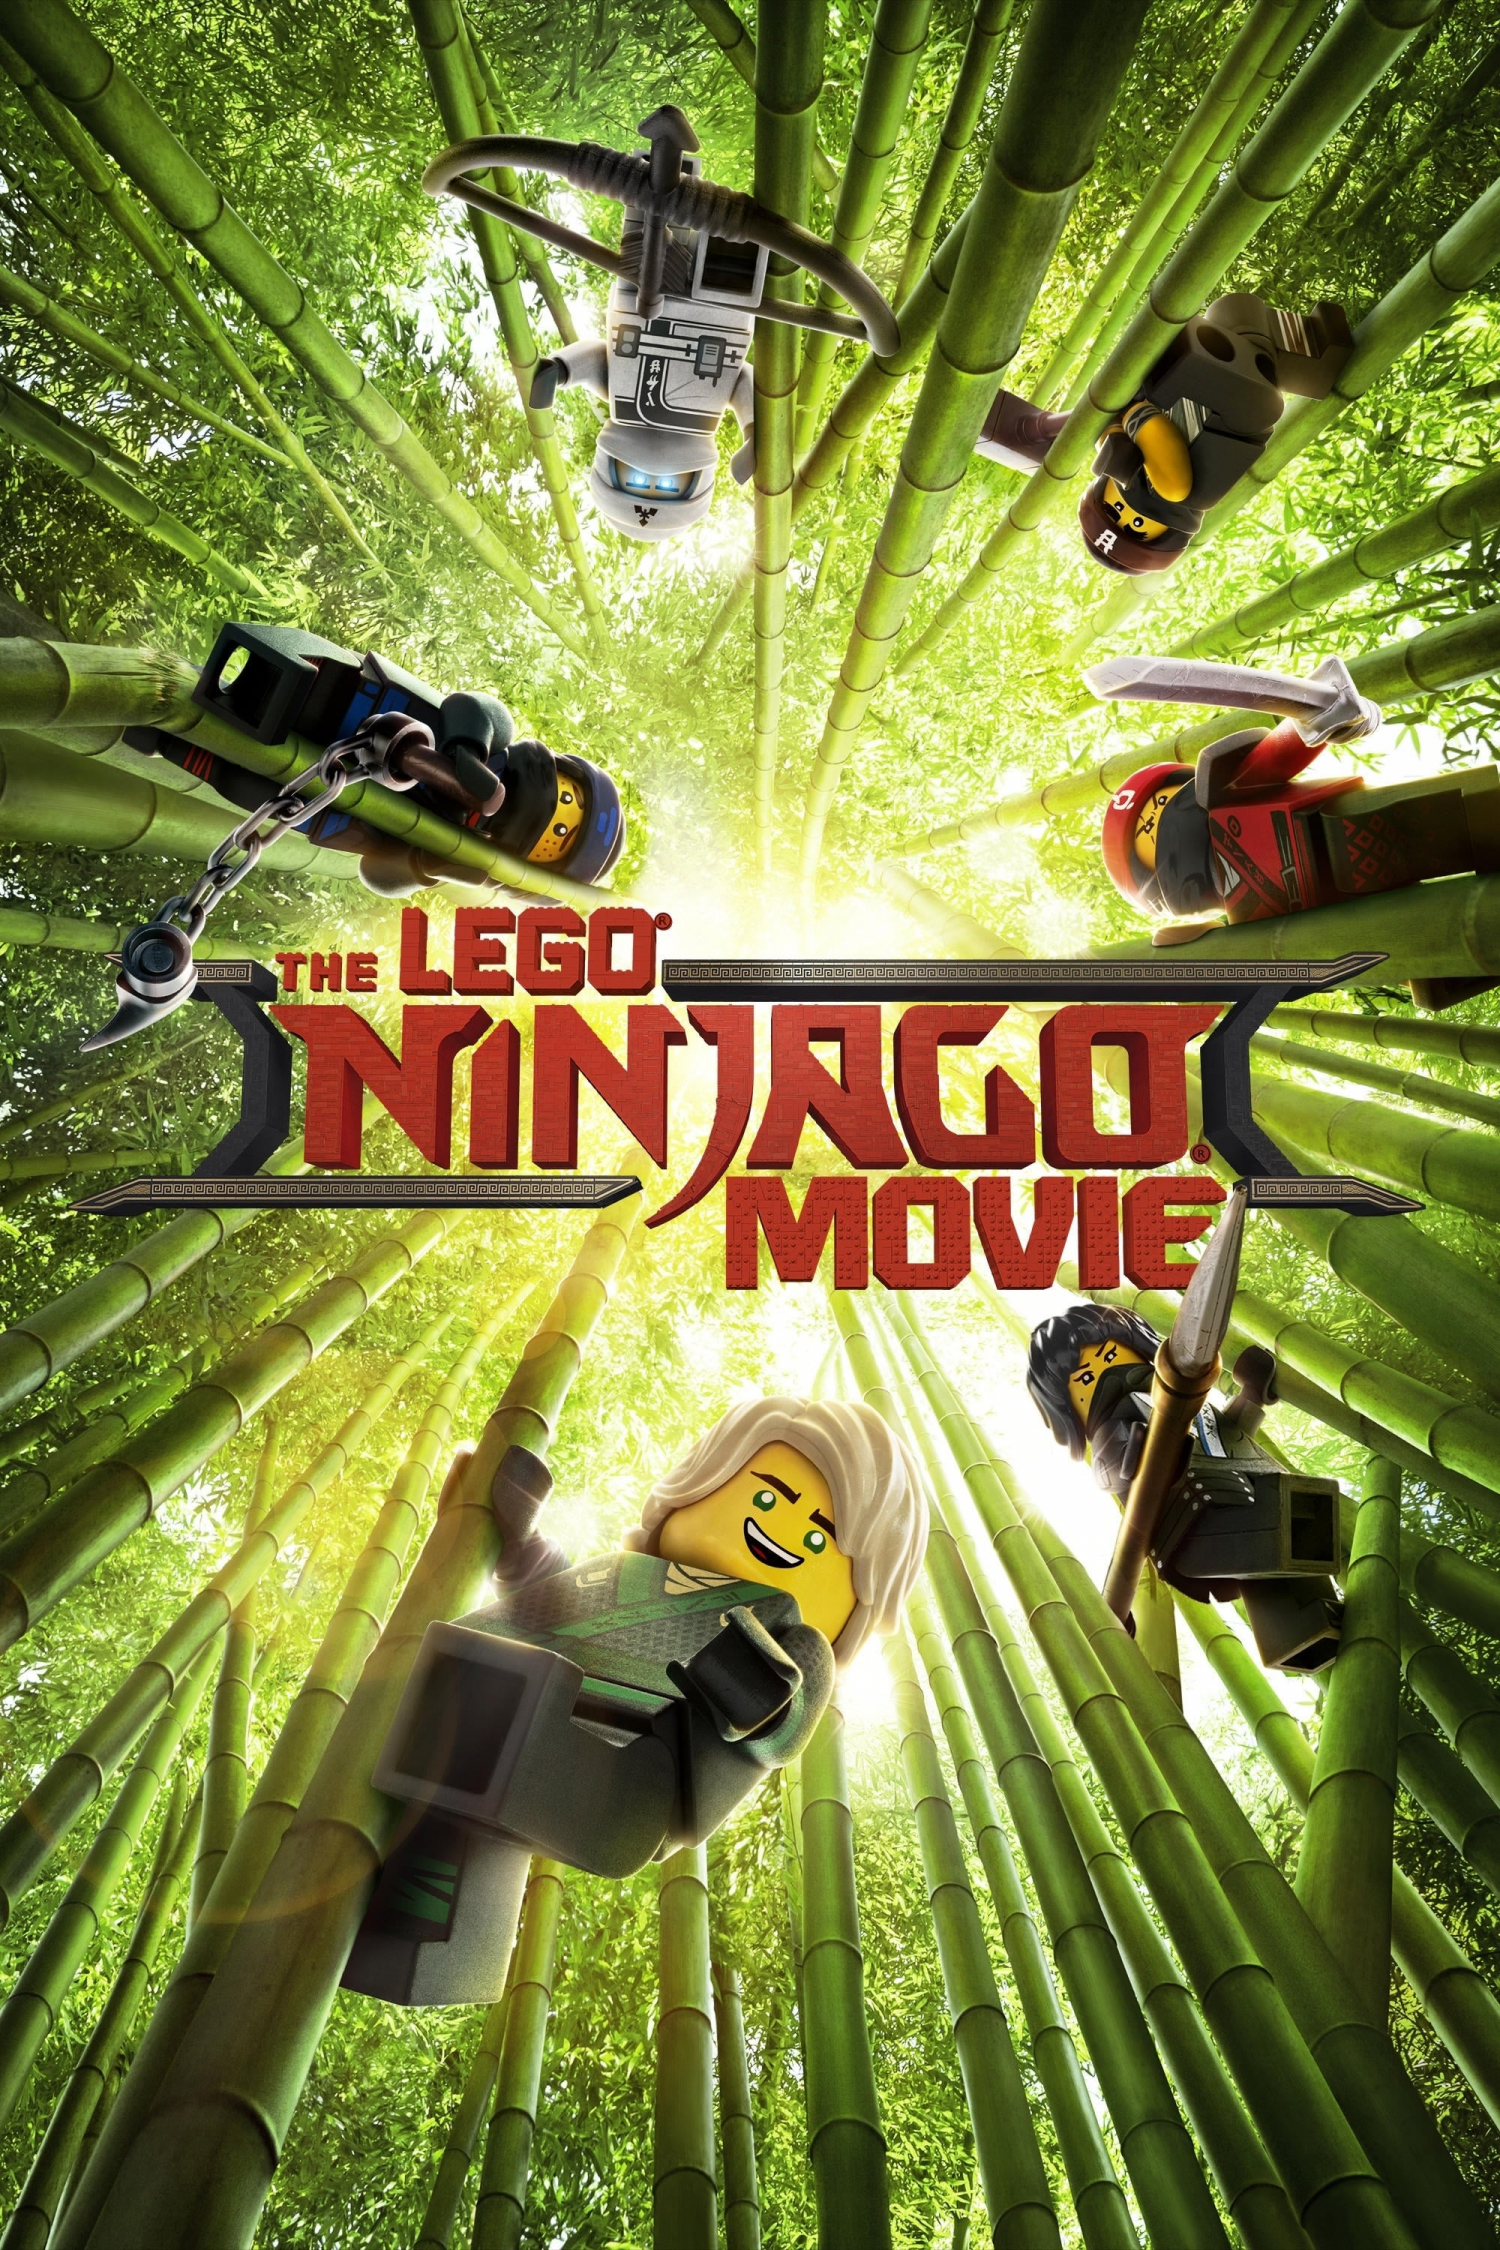 the lego ninjago movie  movie info and showtimes in